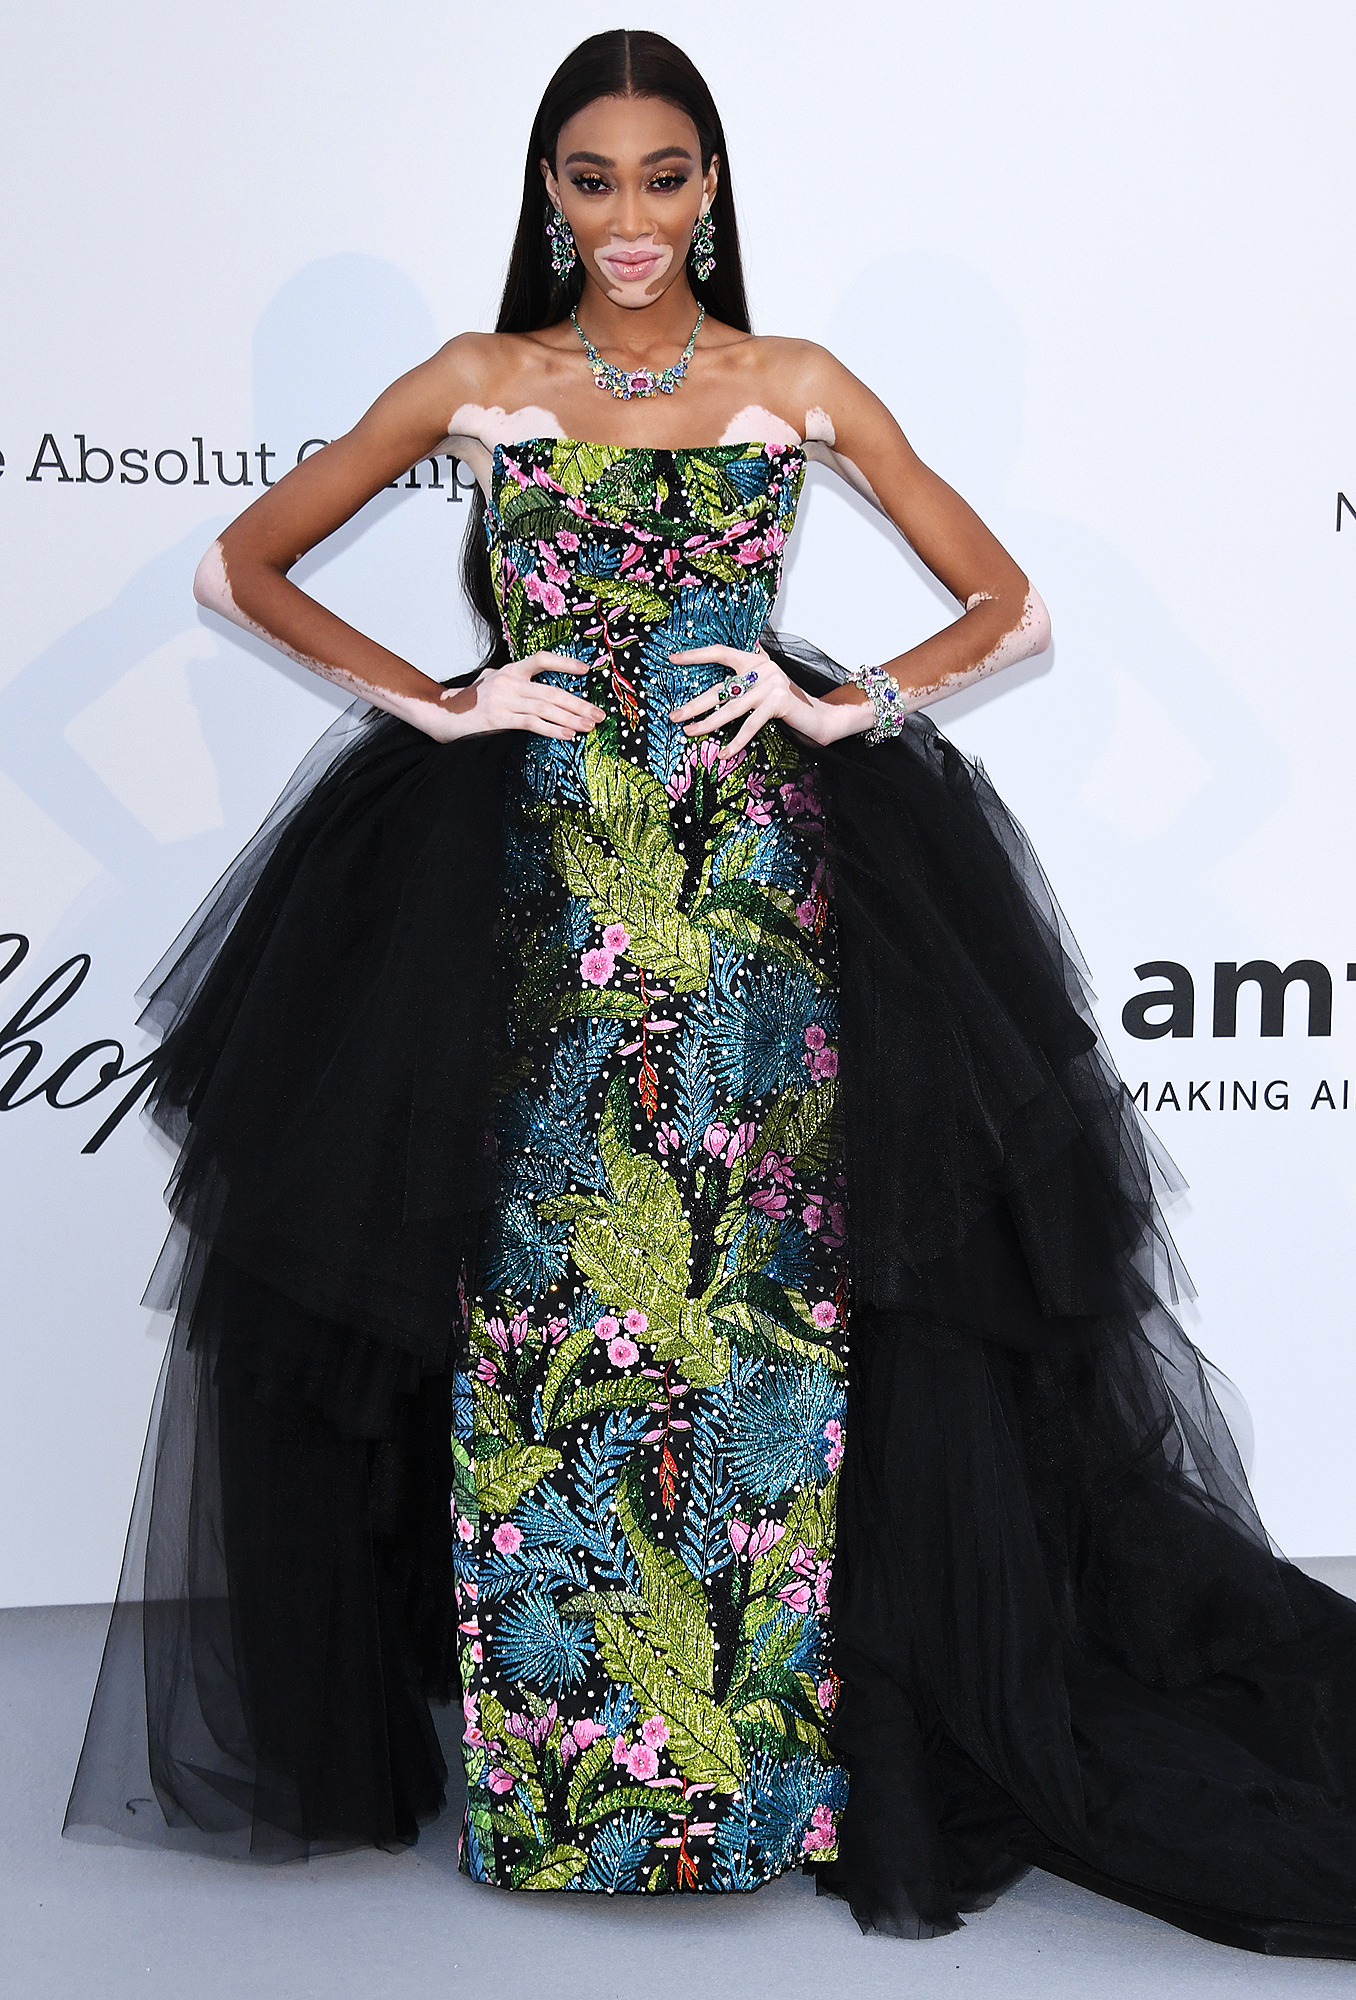 Winnie-Harlow - A black tulle skirt brought the drama out of the model's tropical-inspired Richard Quinn gown at the amfAR Cannes Gala on Thursday, May 23.